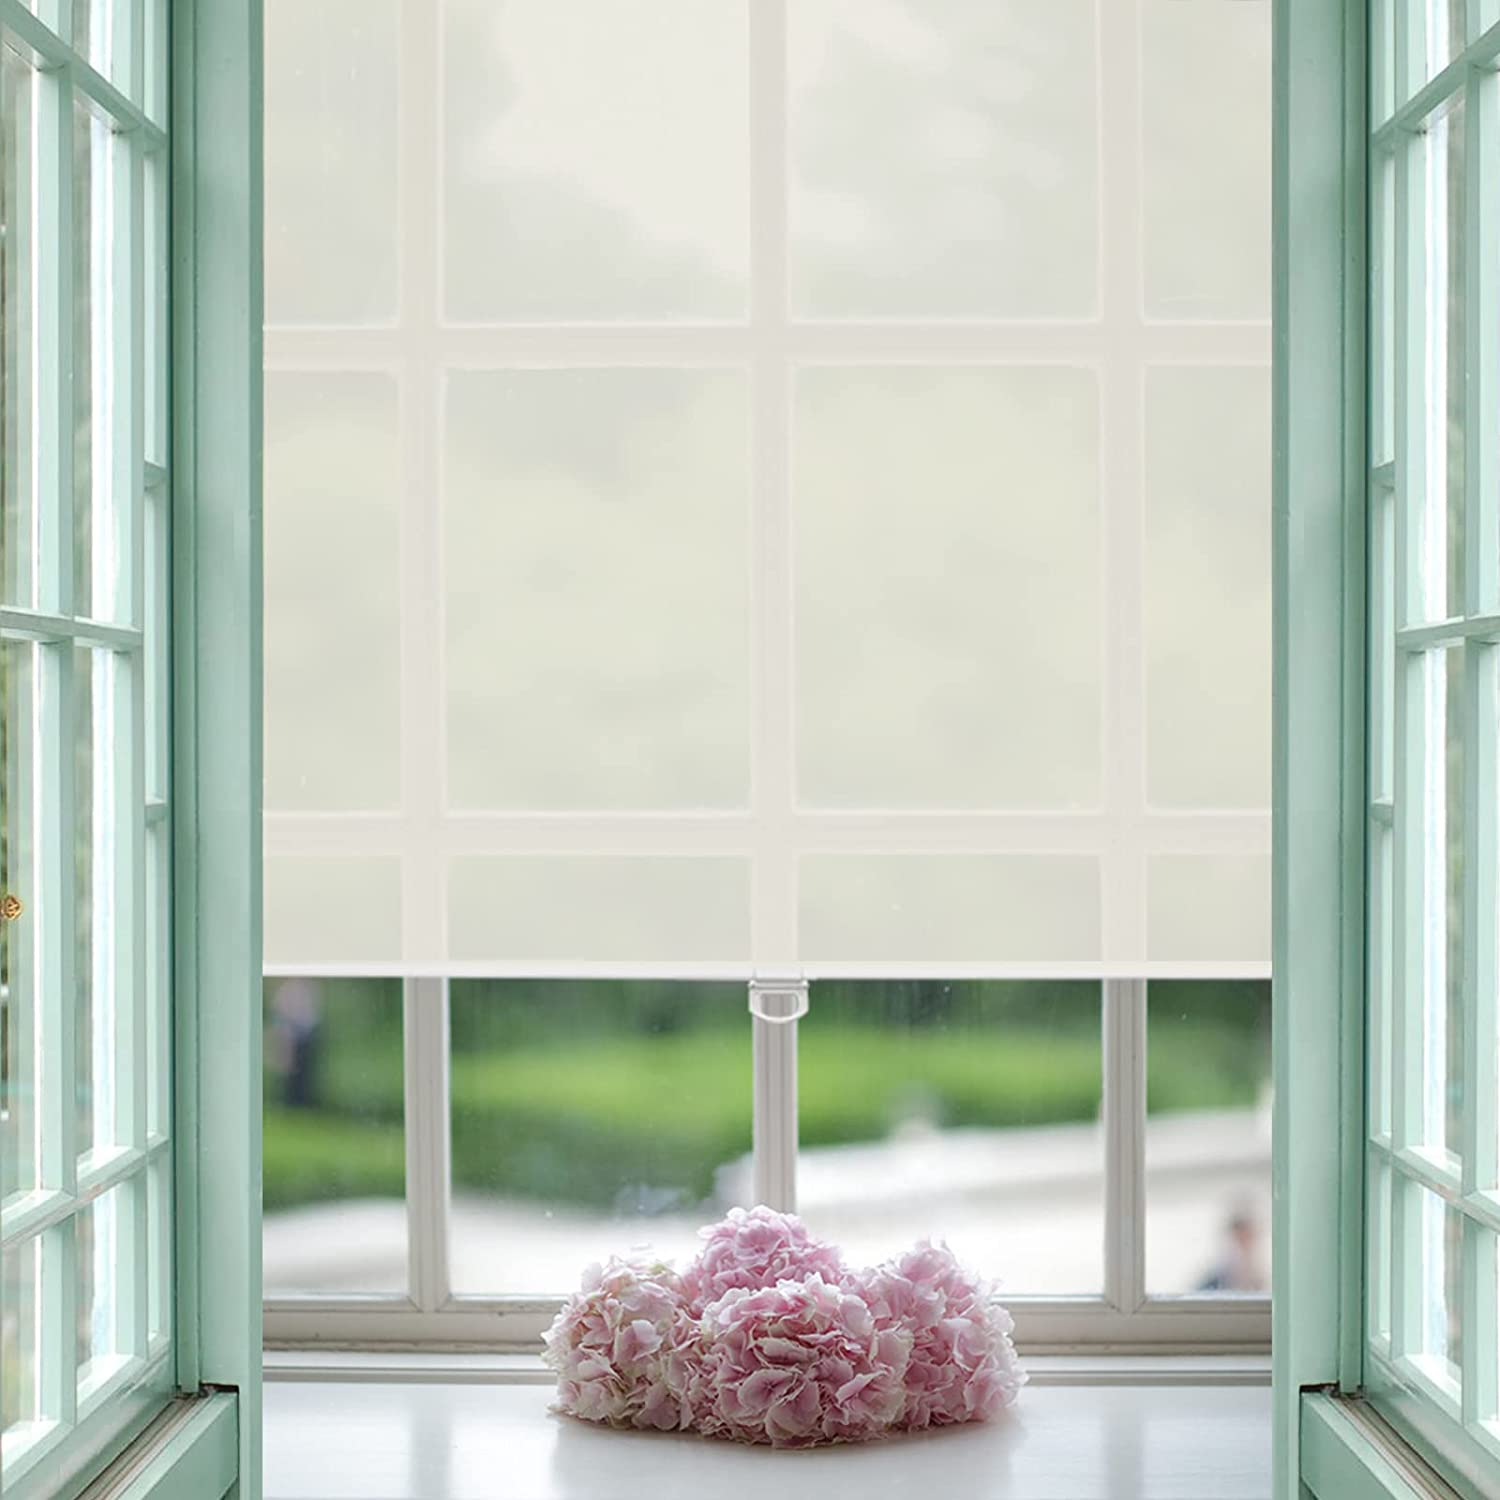 AOSKY Cordless Blinds for Windows Light Filtering Roller Window Shades for Room Darkening Shades with UV Protection Room Darkening Shades for Home, Bedroom, Office 30